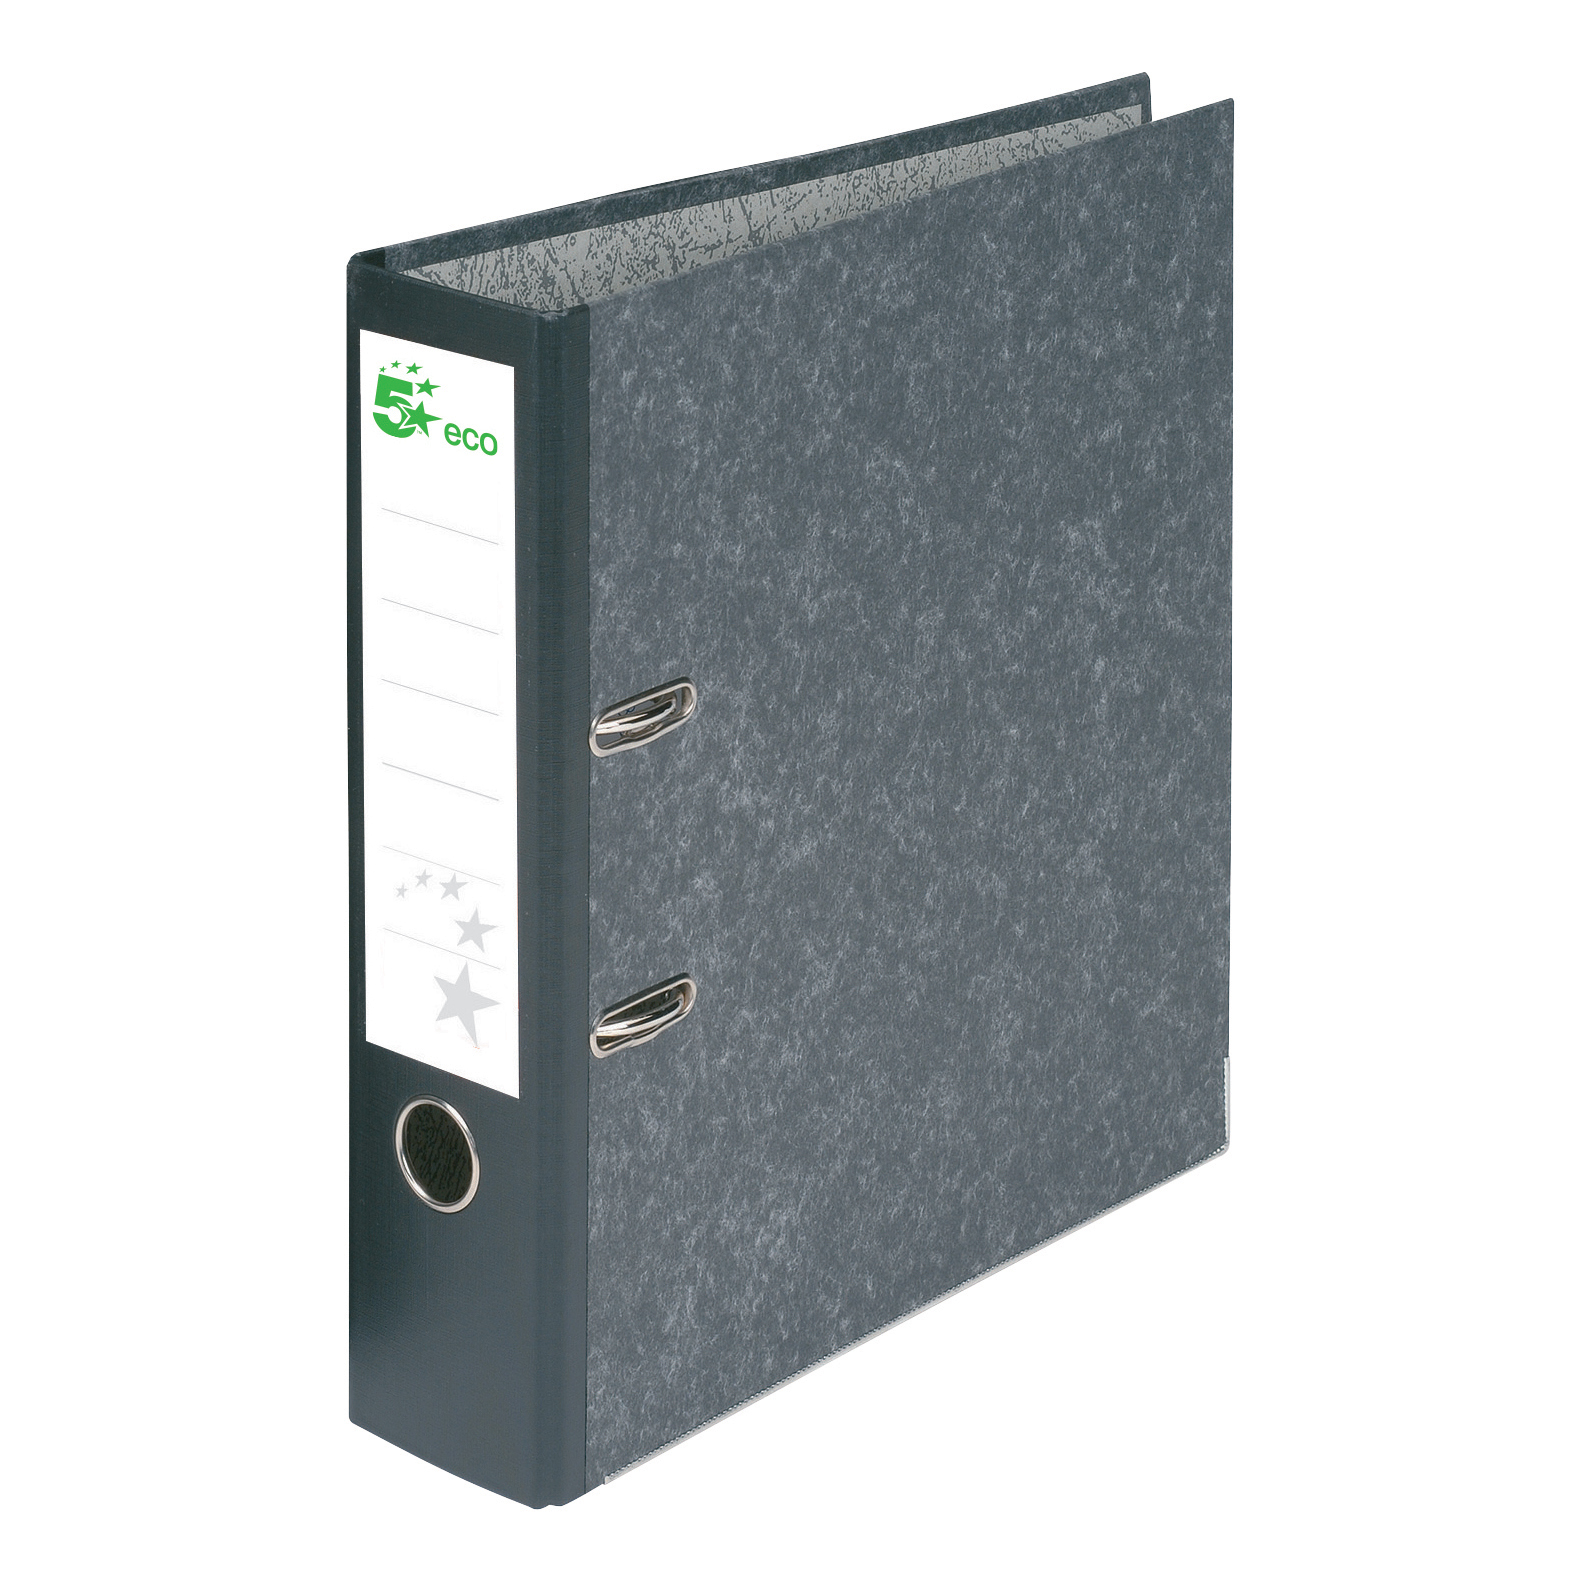 Lever arch file 5 Star Eco Lever Arch File A4 Recycled Cloud